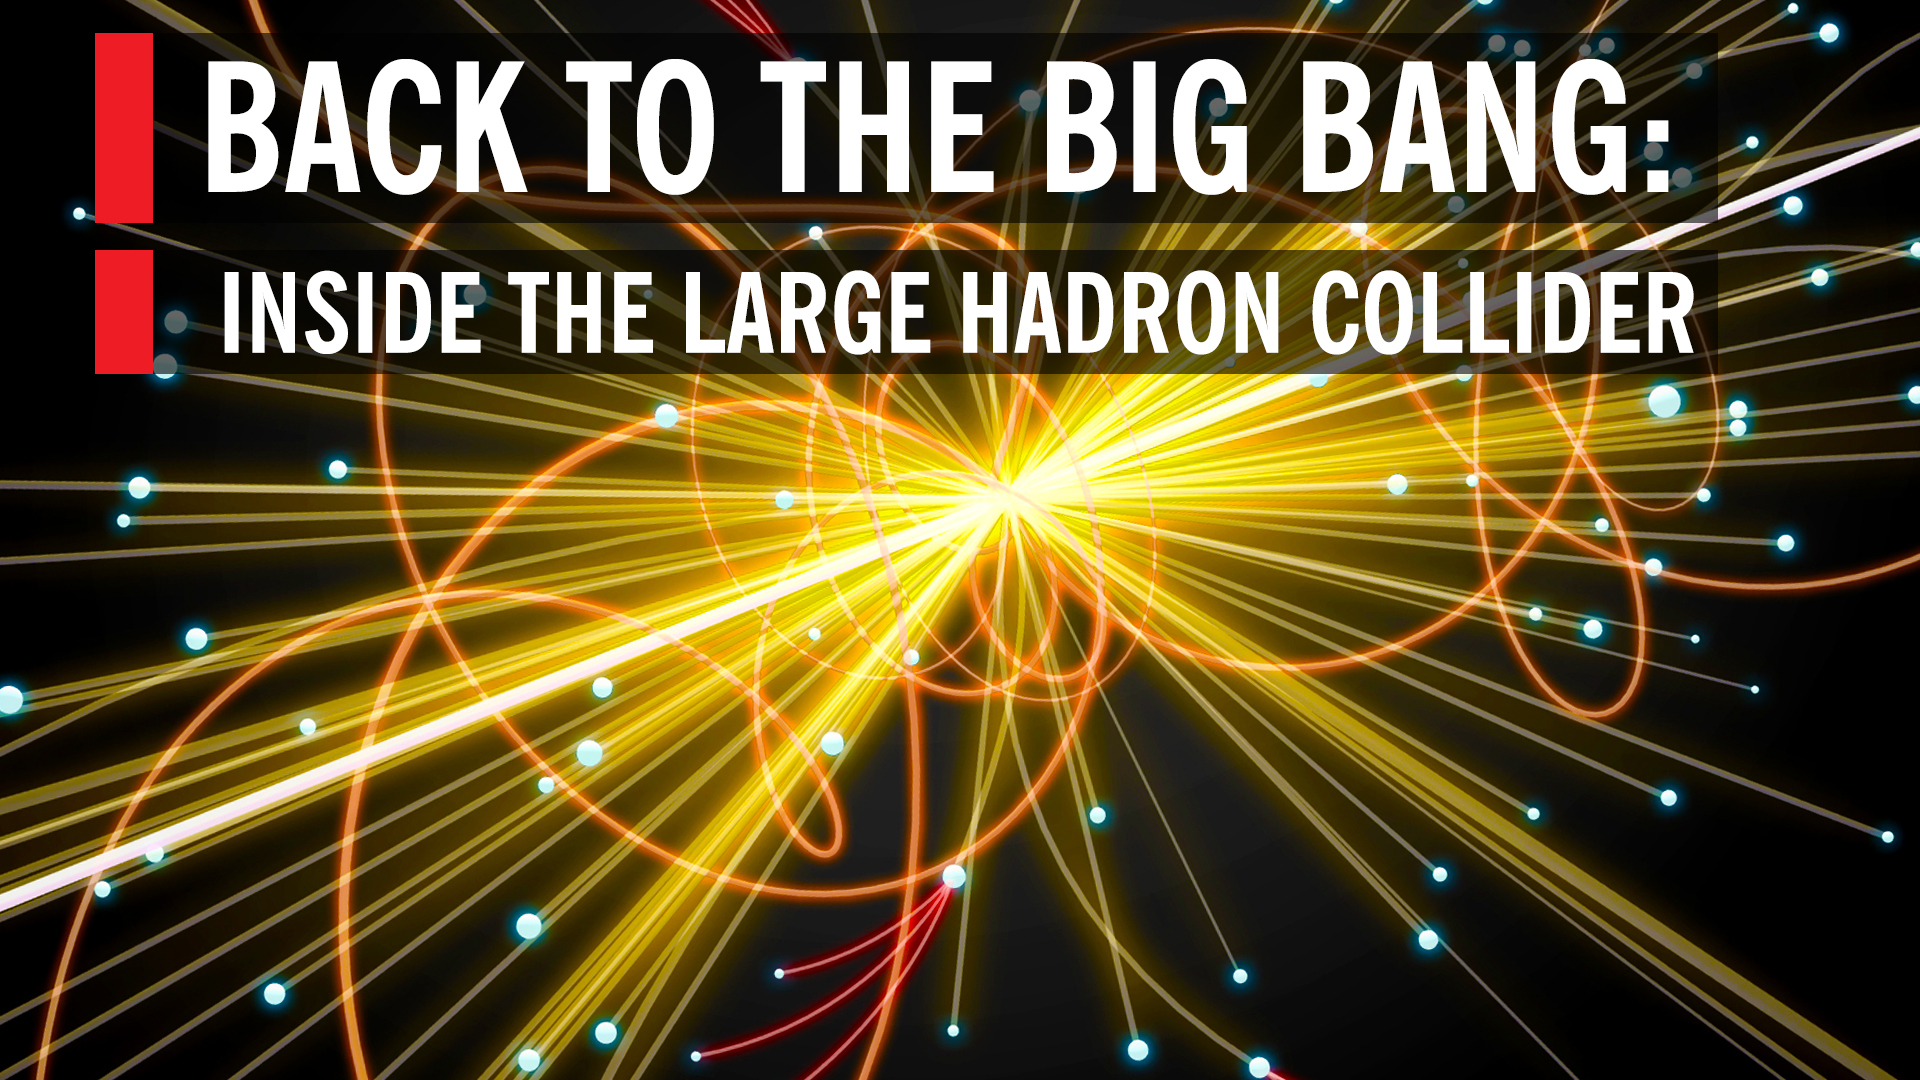 large hadron collider report The large hadron collider (lhc) is one of the largest scientific instruments ever built since opening up a new energy frontier for exploration in 2010, it has gathered a global user community of about 7,000 scientists working in fundamental particle physics and the physics of hadronic matter at.